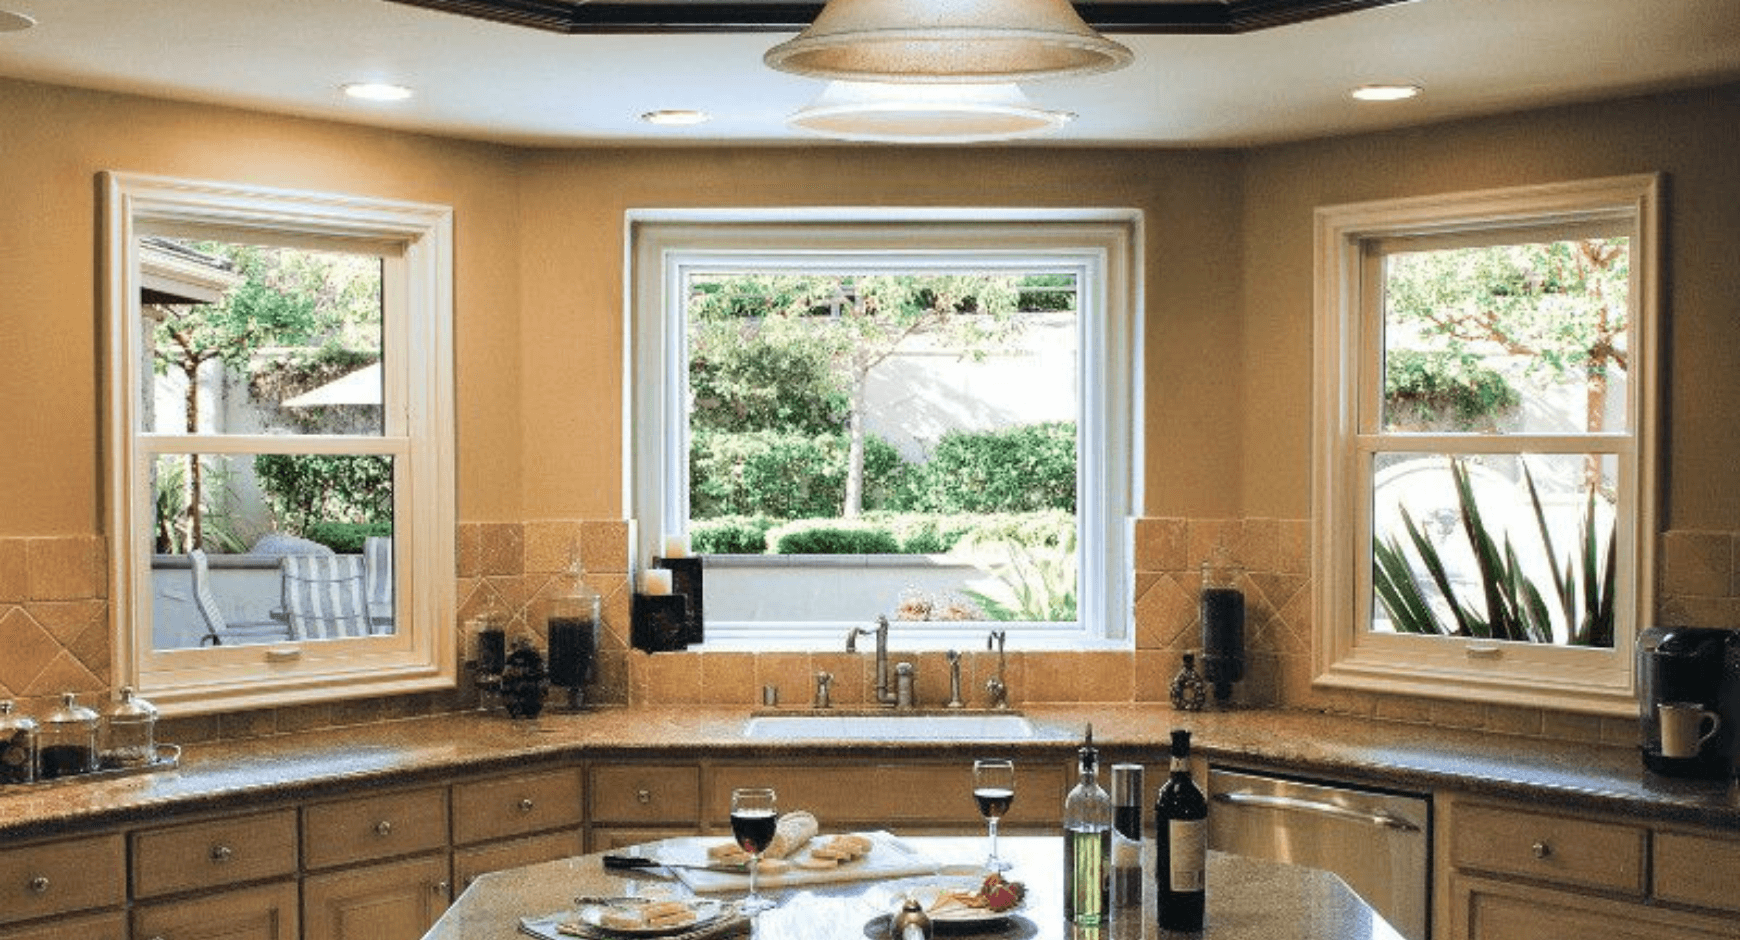 Looking out the window of a beautiful kitchen